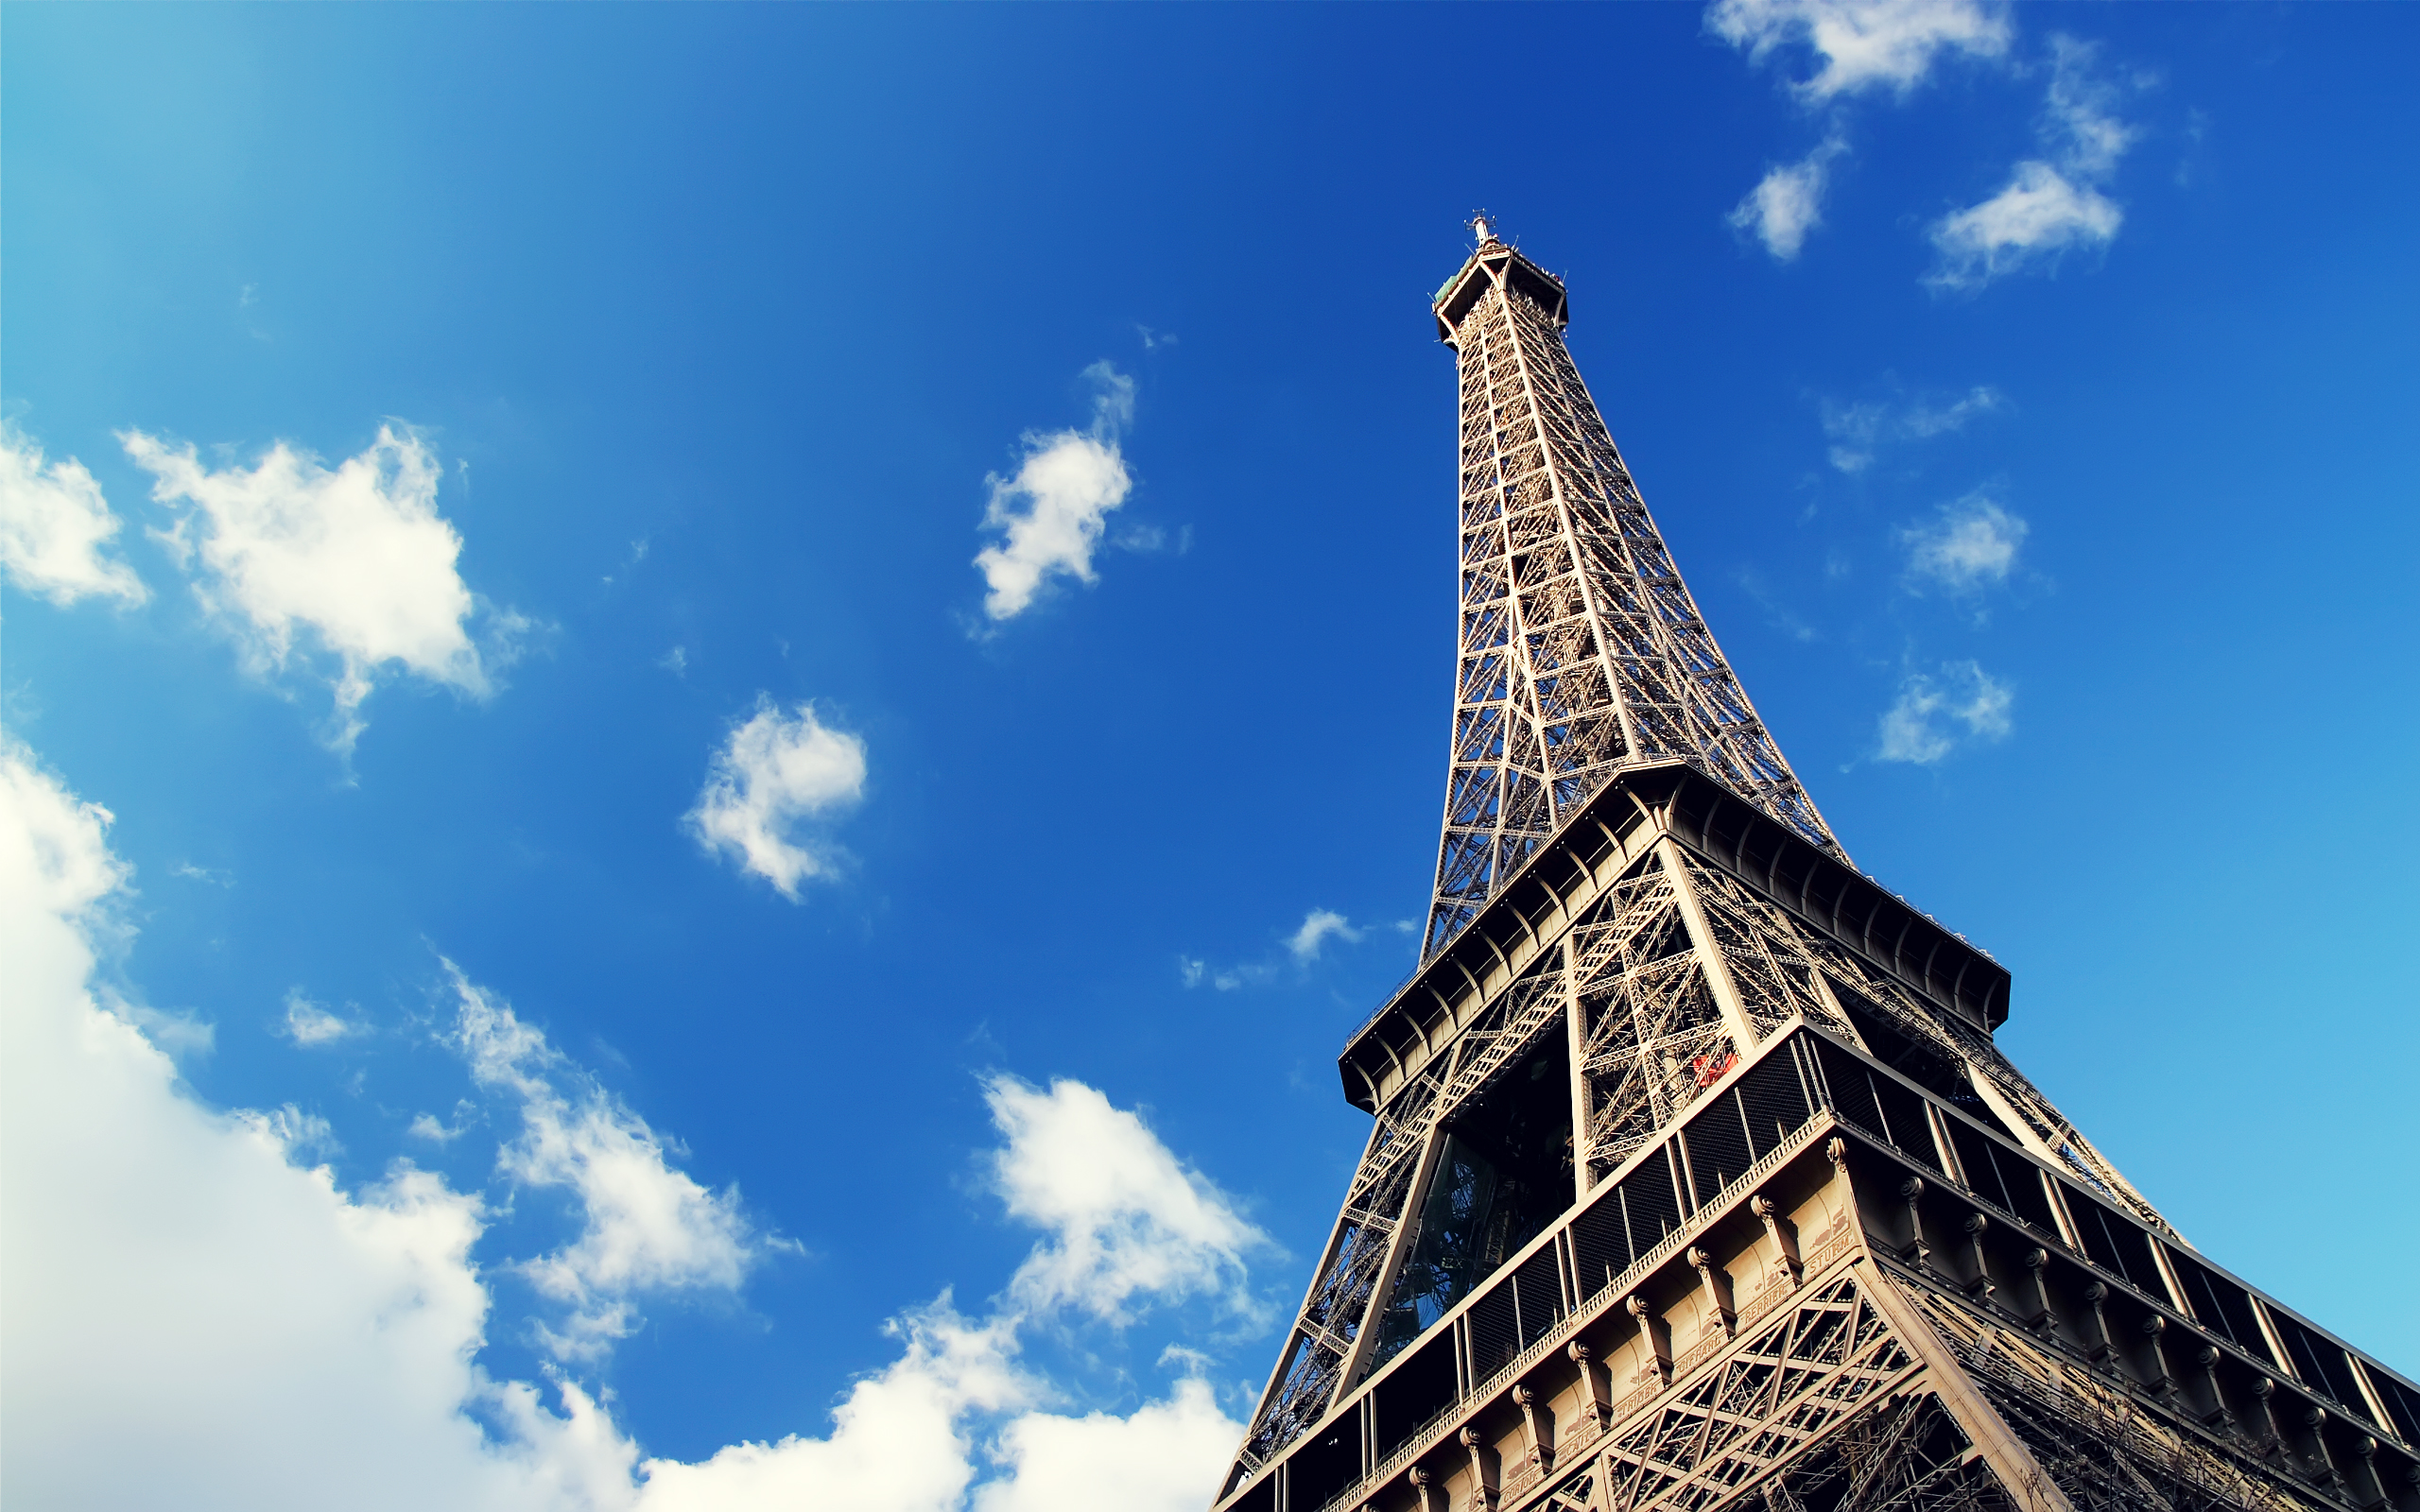 Wallpaper Of Great Building: Eiffel Tower In The Sky ...